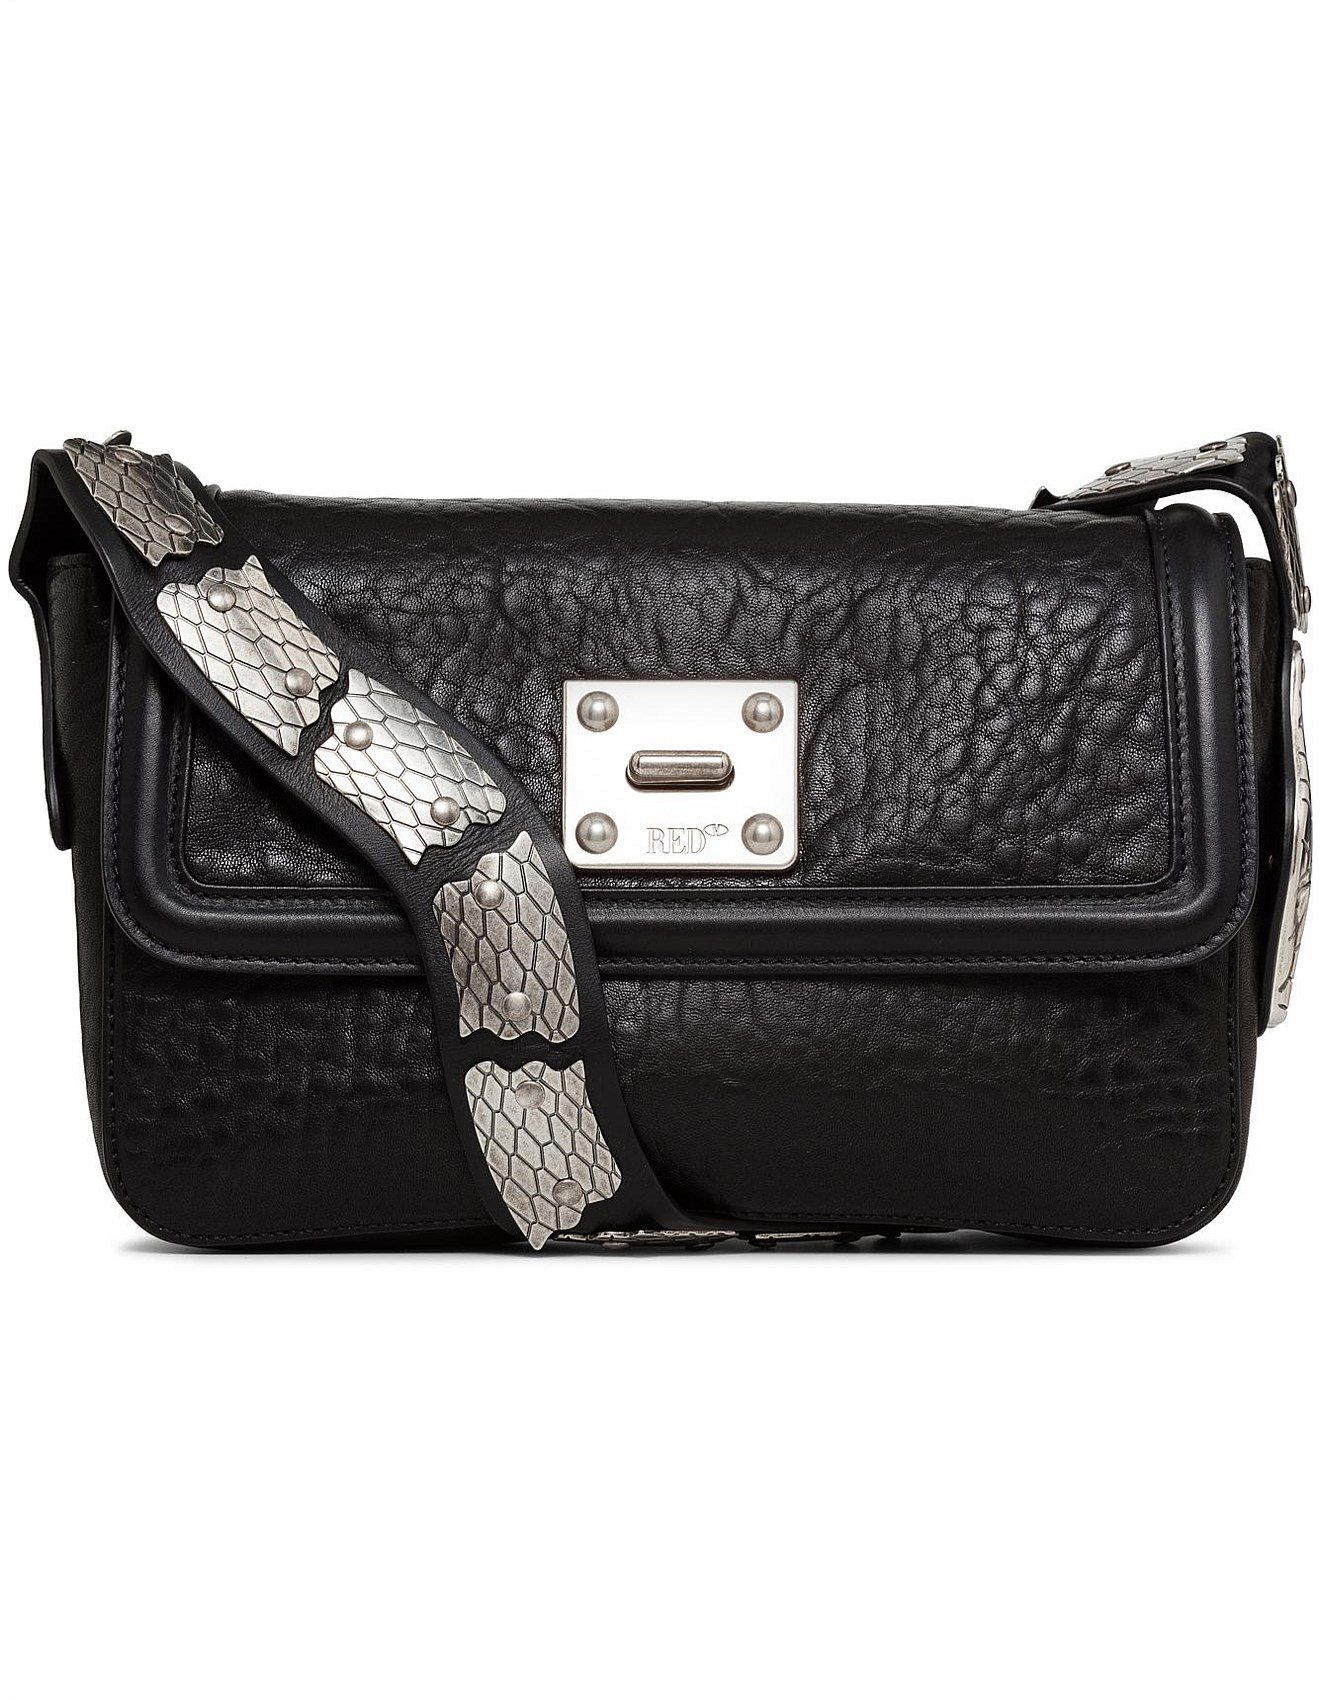 049ddfc44e2452 Snake Large Bubble Leather Bag